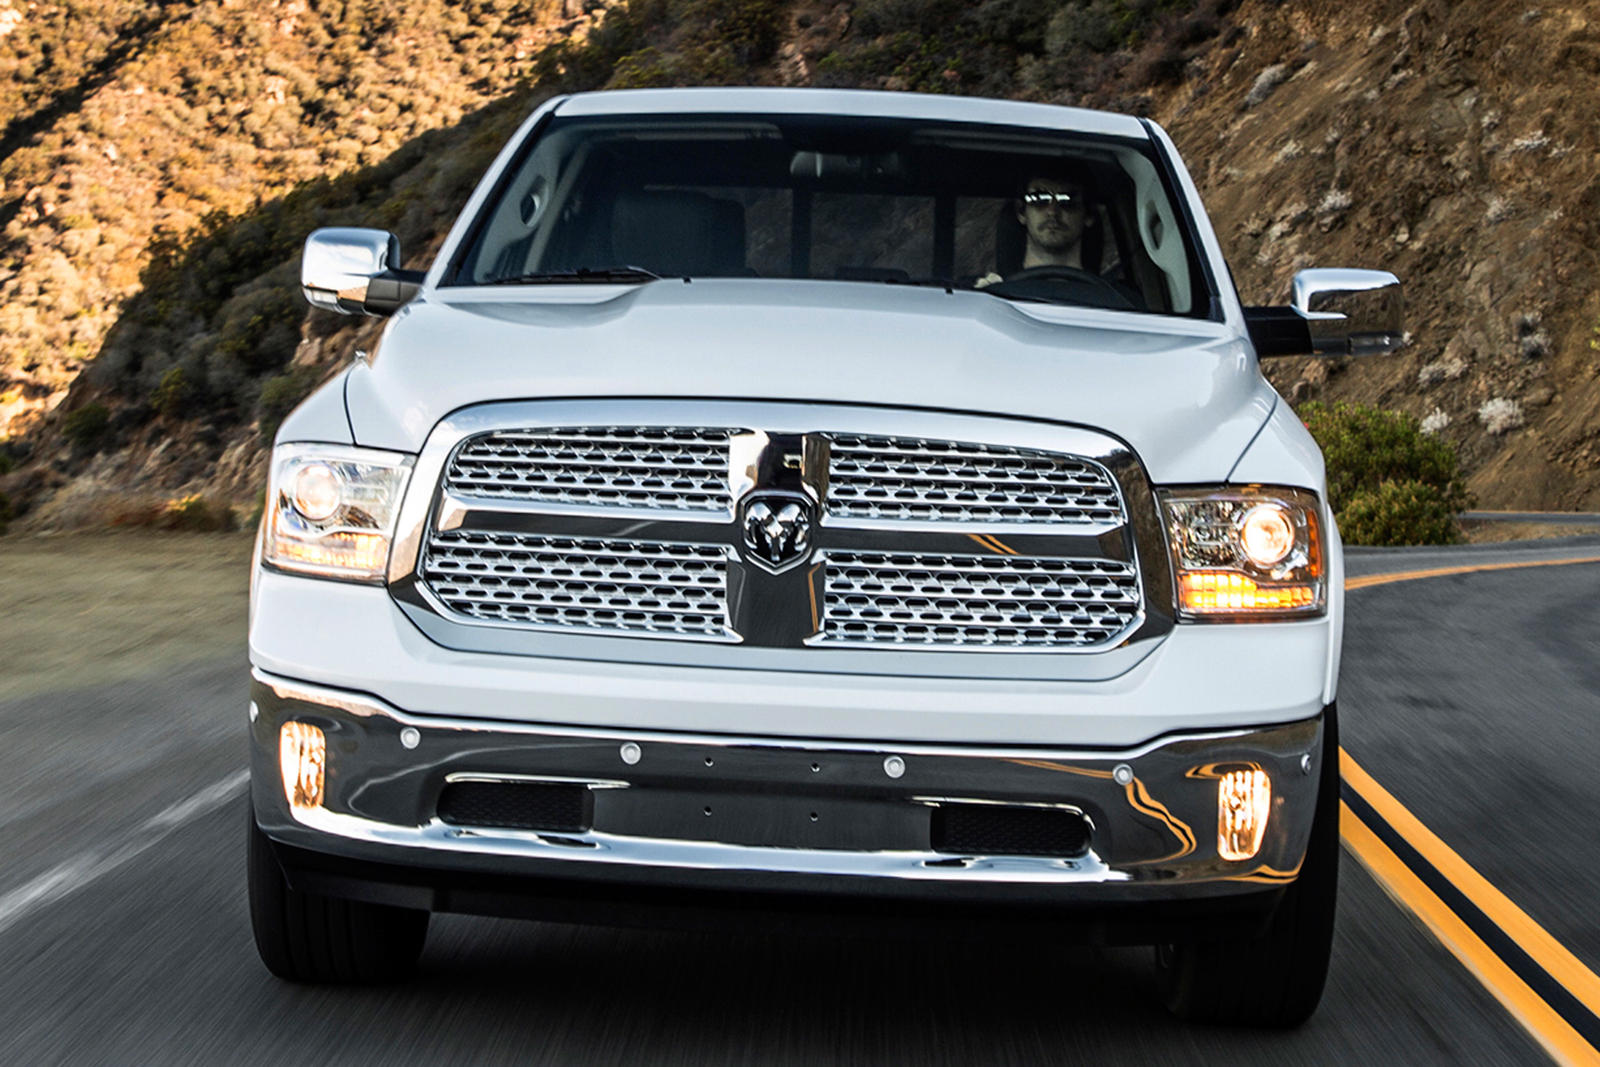 Drive A Ram Or Jeep? You Could Get A Big Cash Settlement